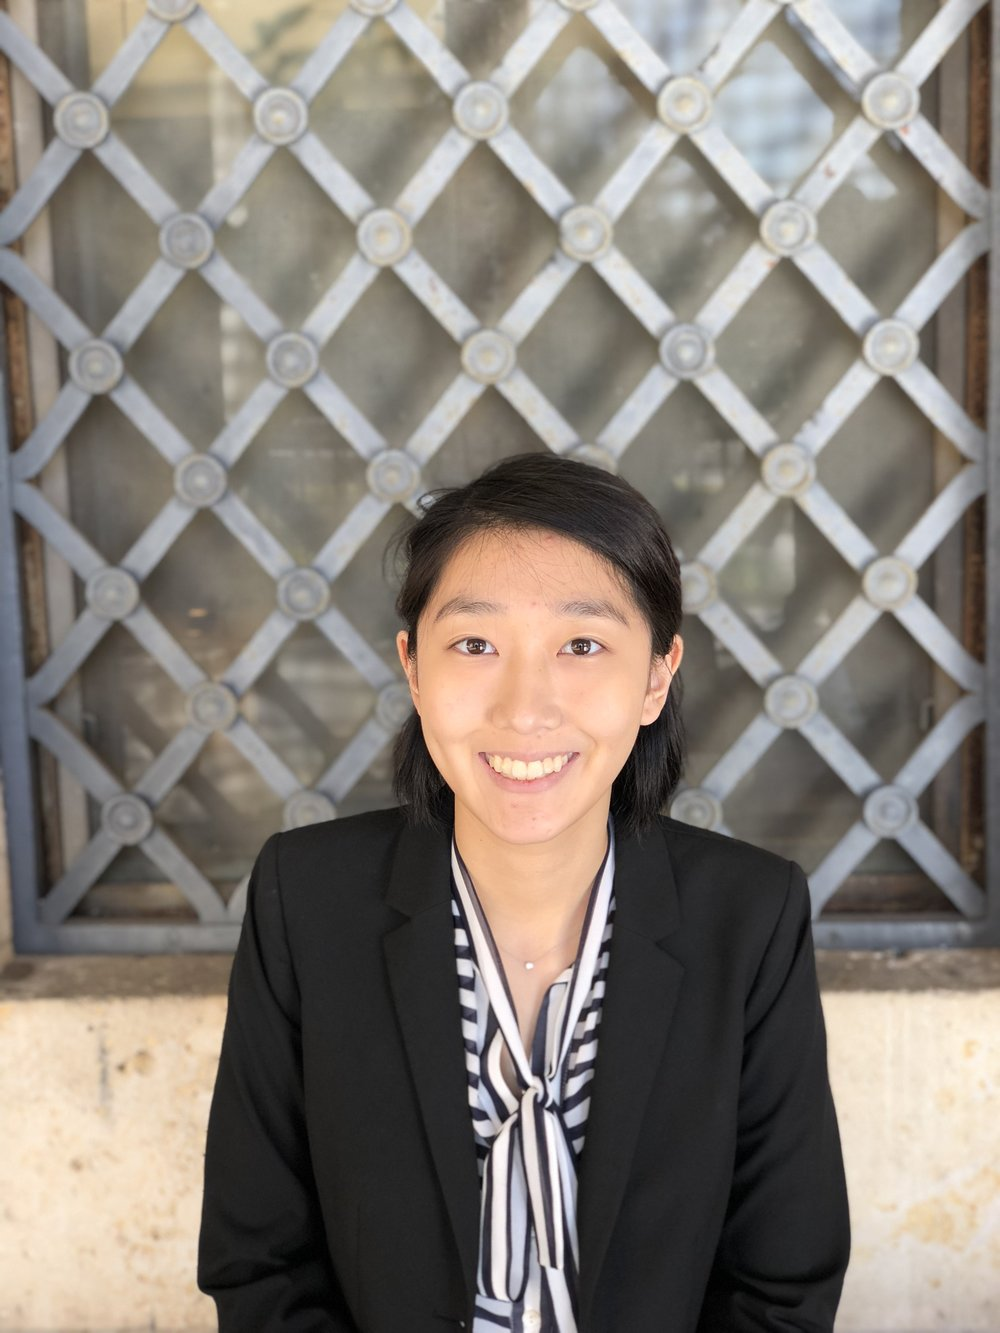 Linda Yoo, Vice President of External Affairs